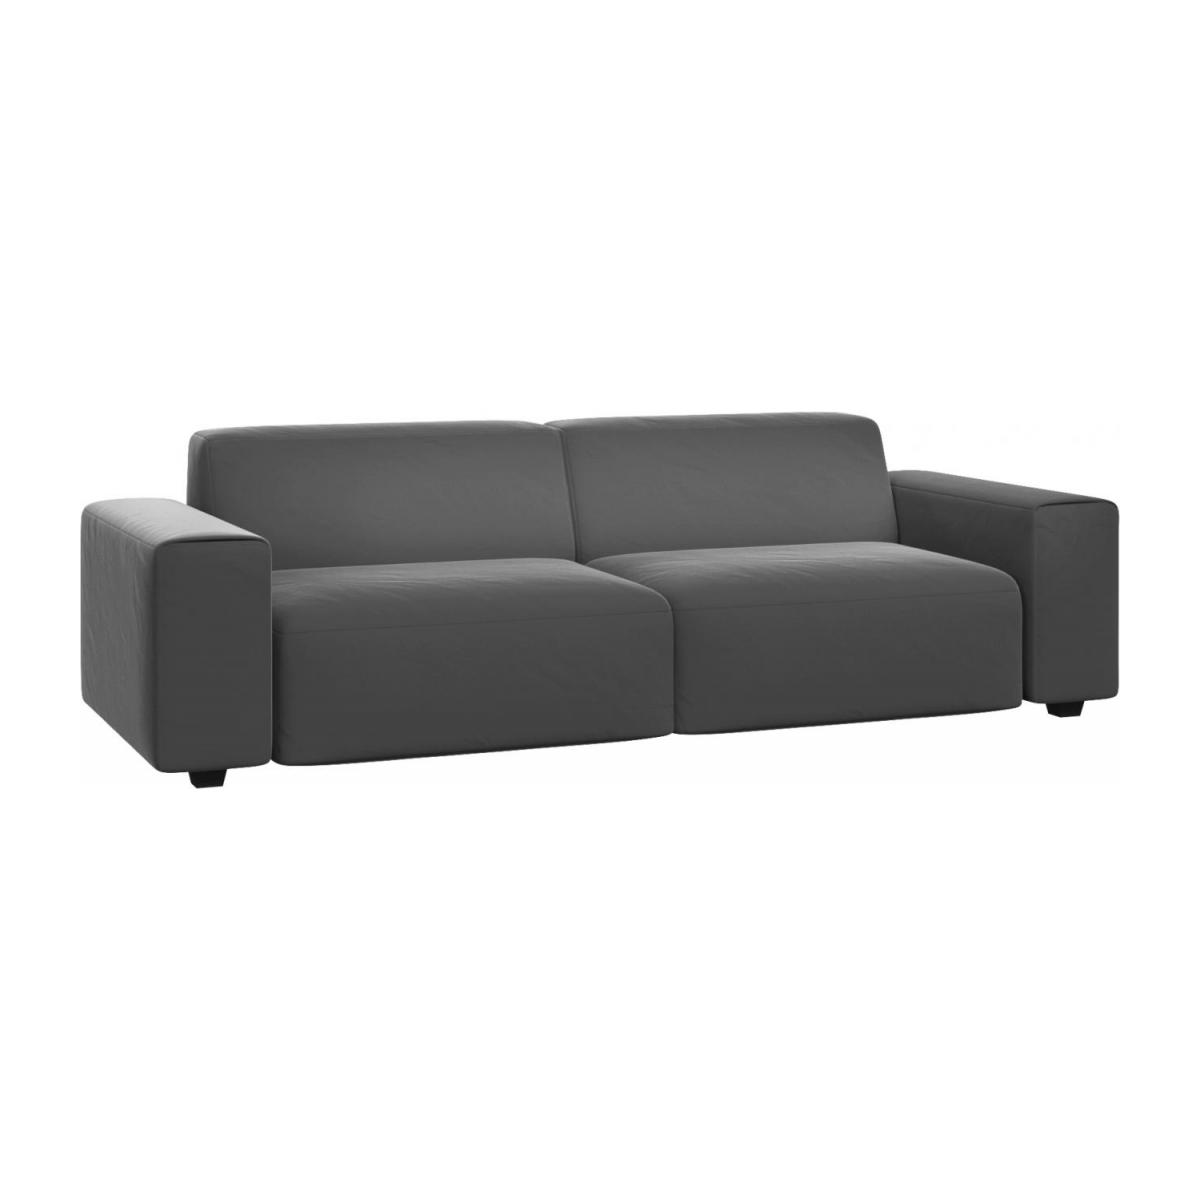 4 seater sofa in Super Velvet fabric, silver grey n°1